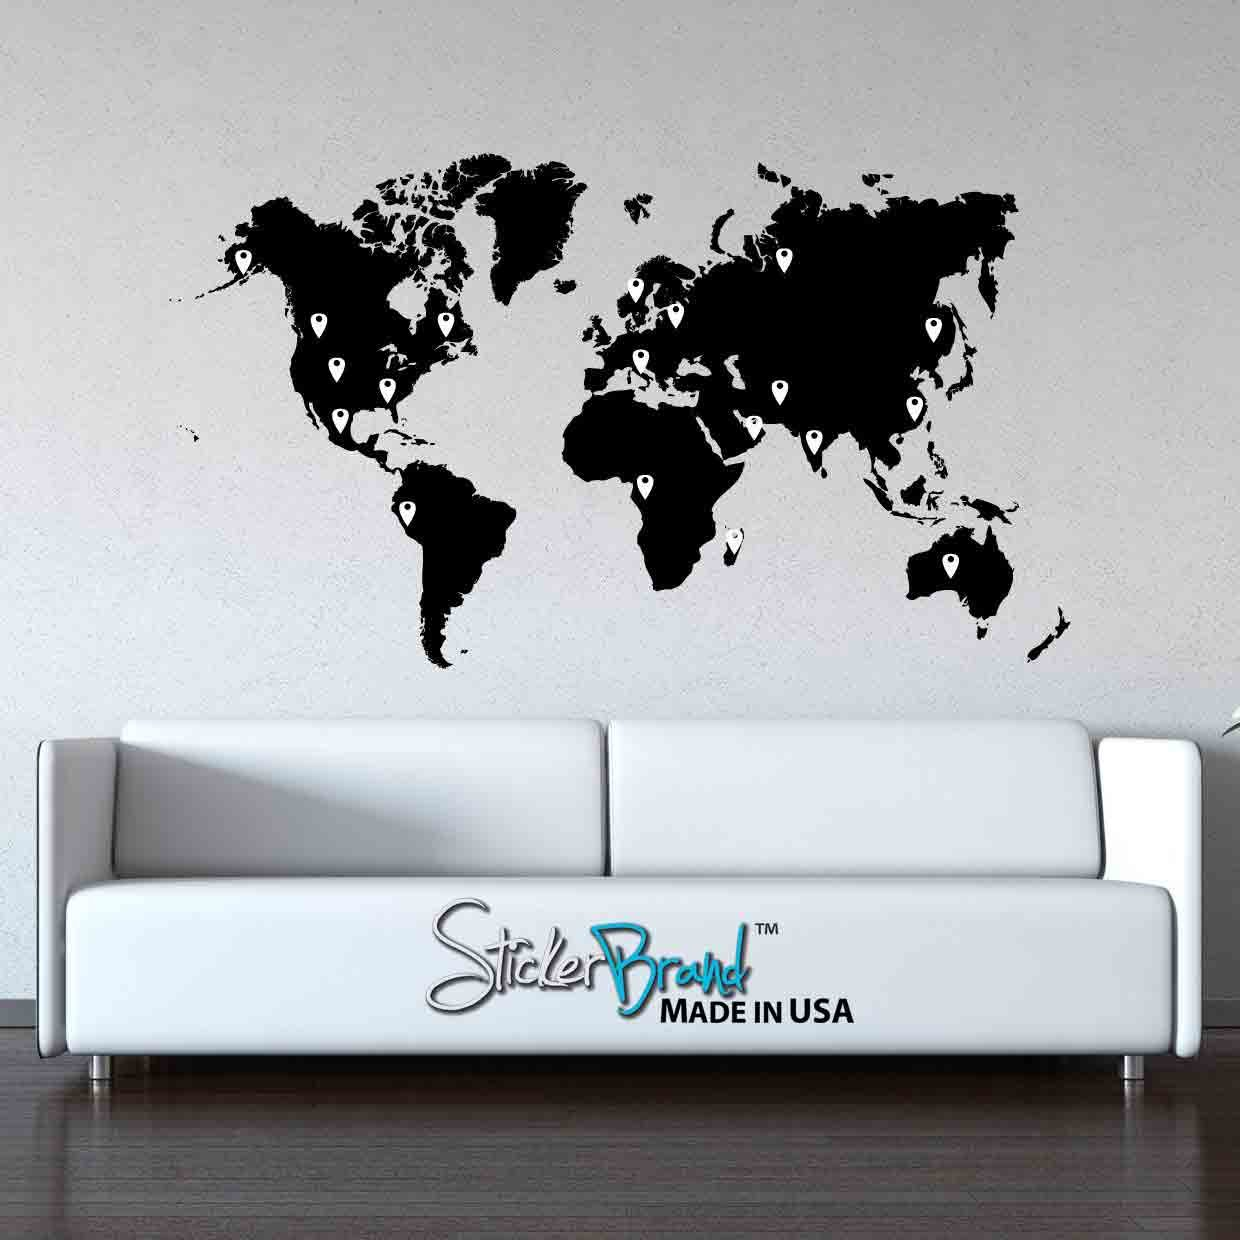 amazoncom stickerbrand vinyl wall art world map of earth with pin drops wall decal sticker black map w red black white grey pins 40 x 70